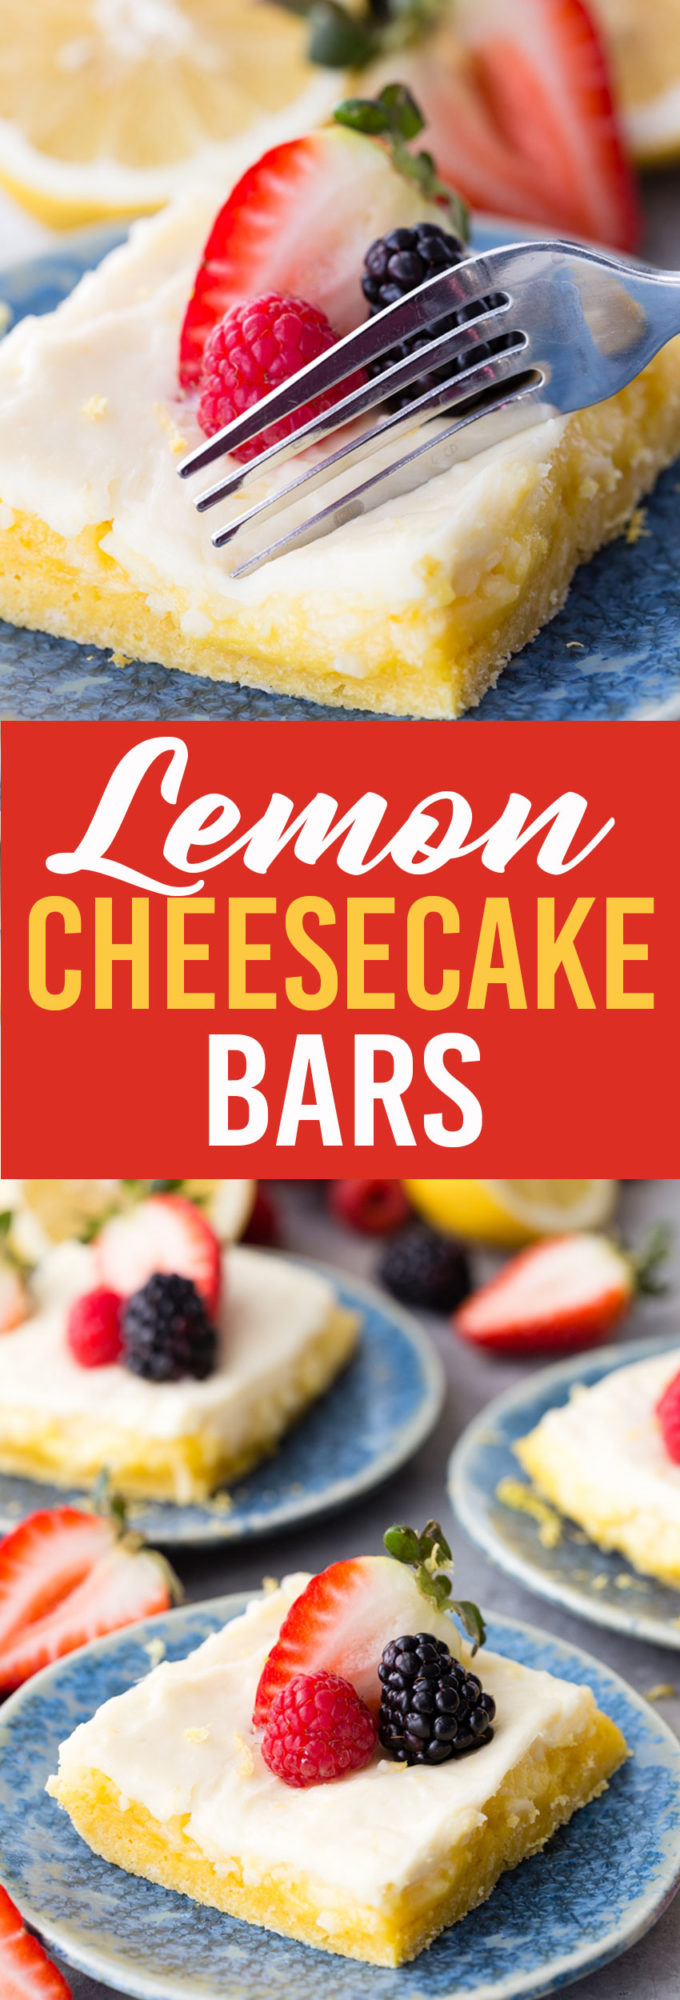 Easy lemon cheesecake bars that start with a boxed cake mix, but are better than the box.